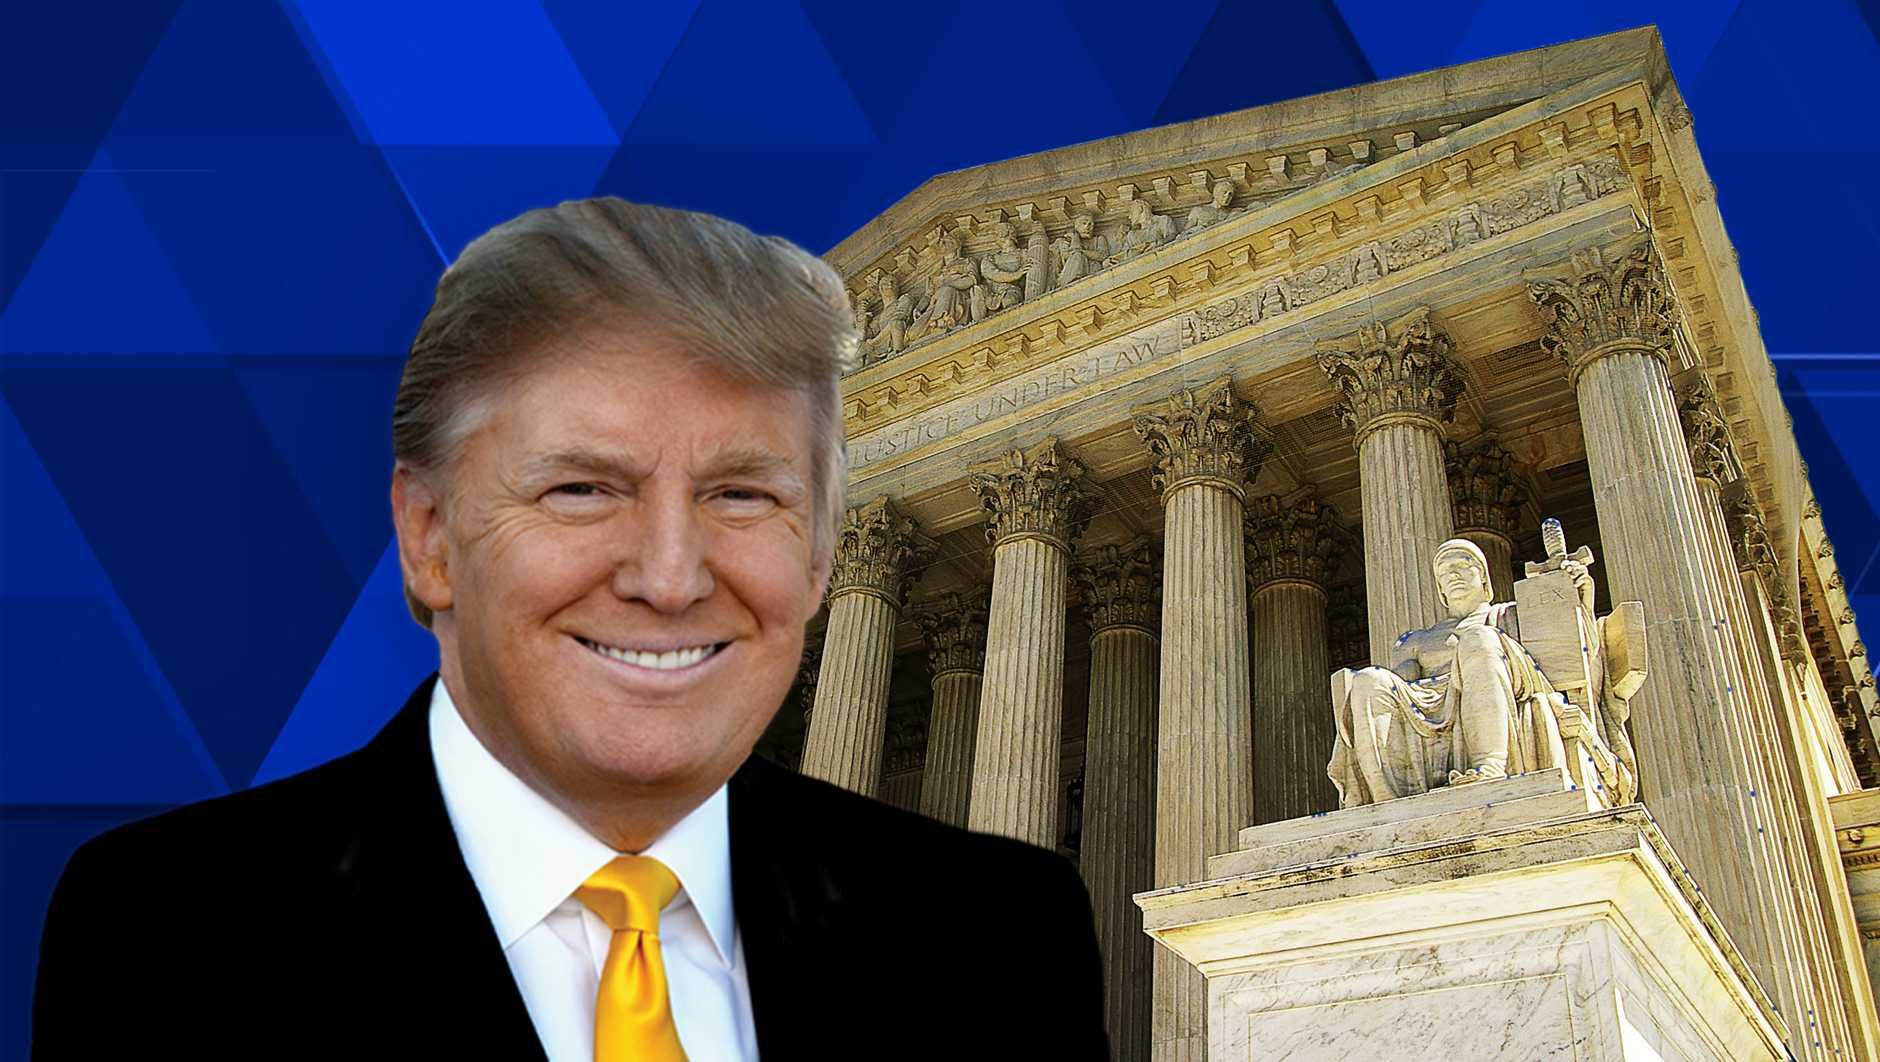 President Trump Supreme Court